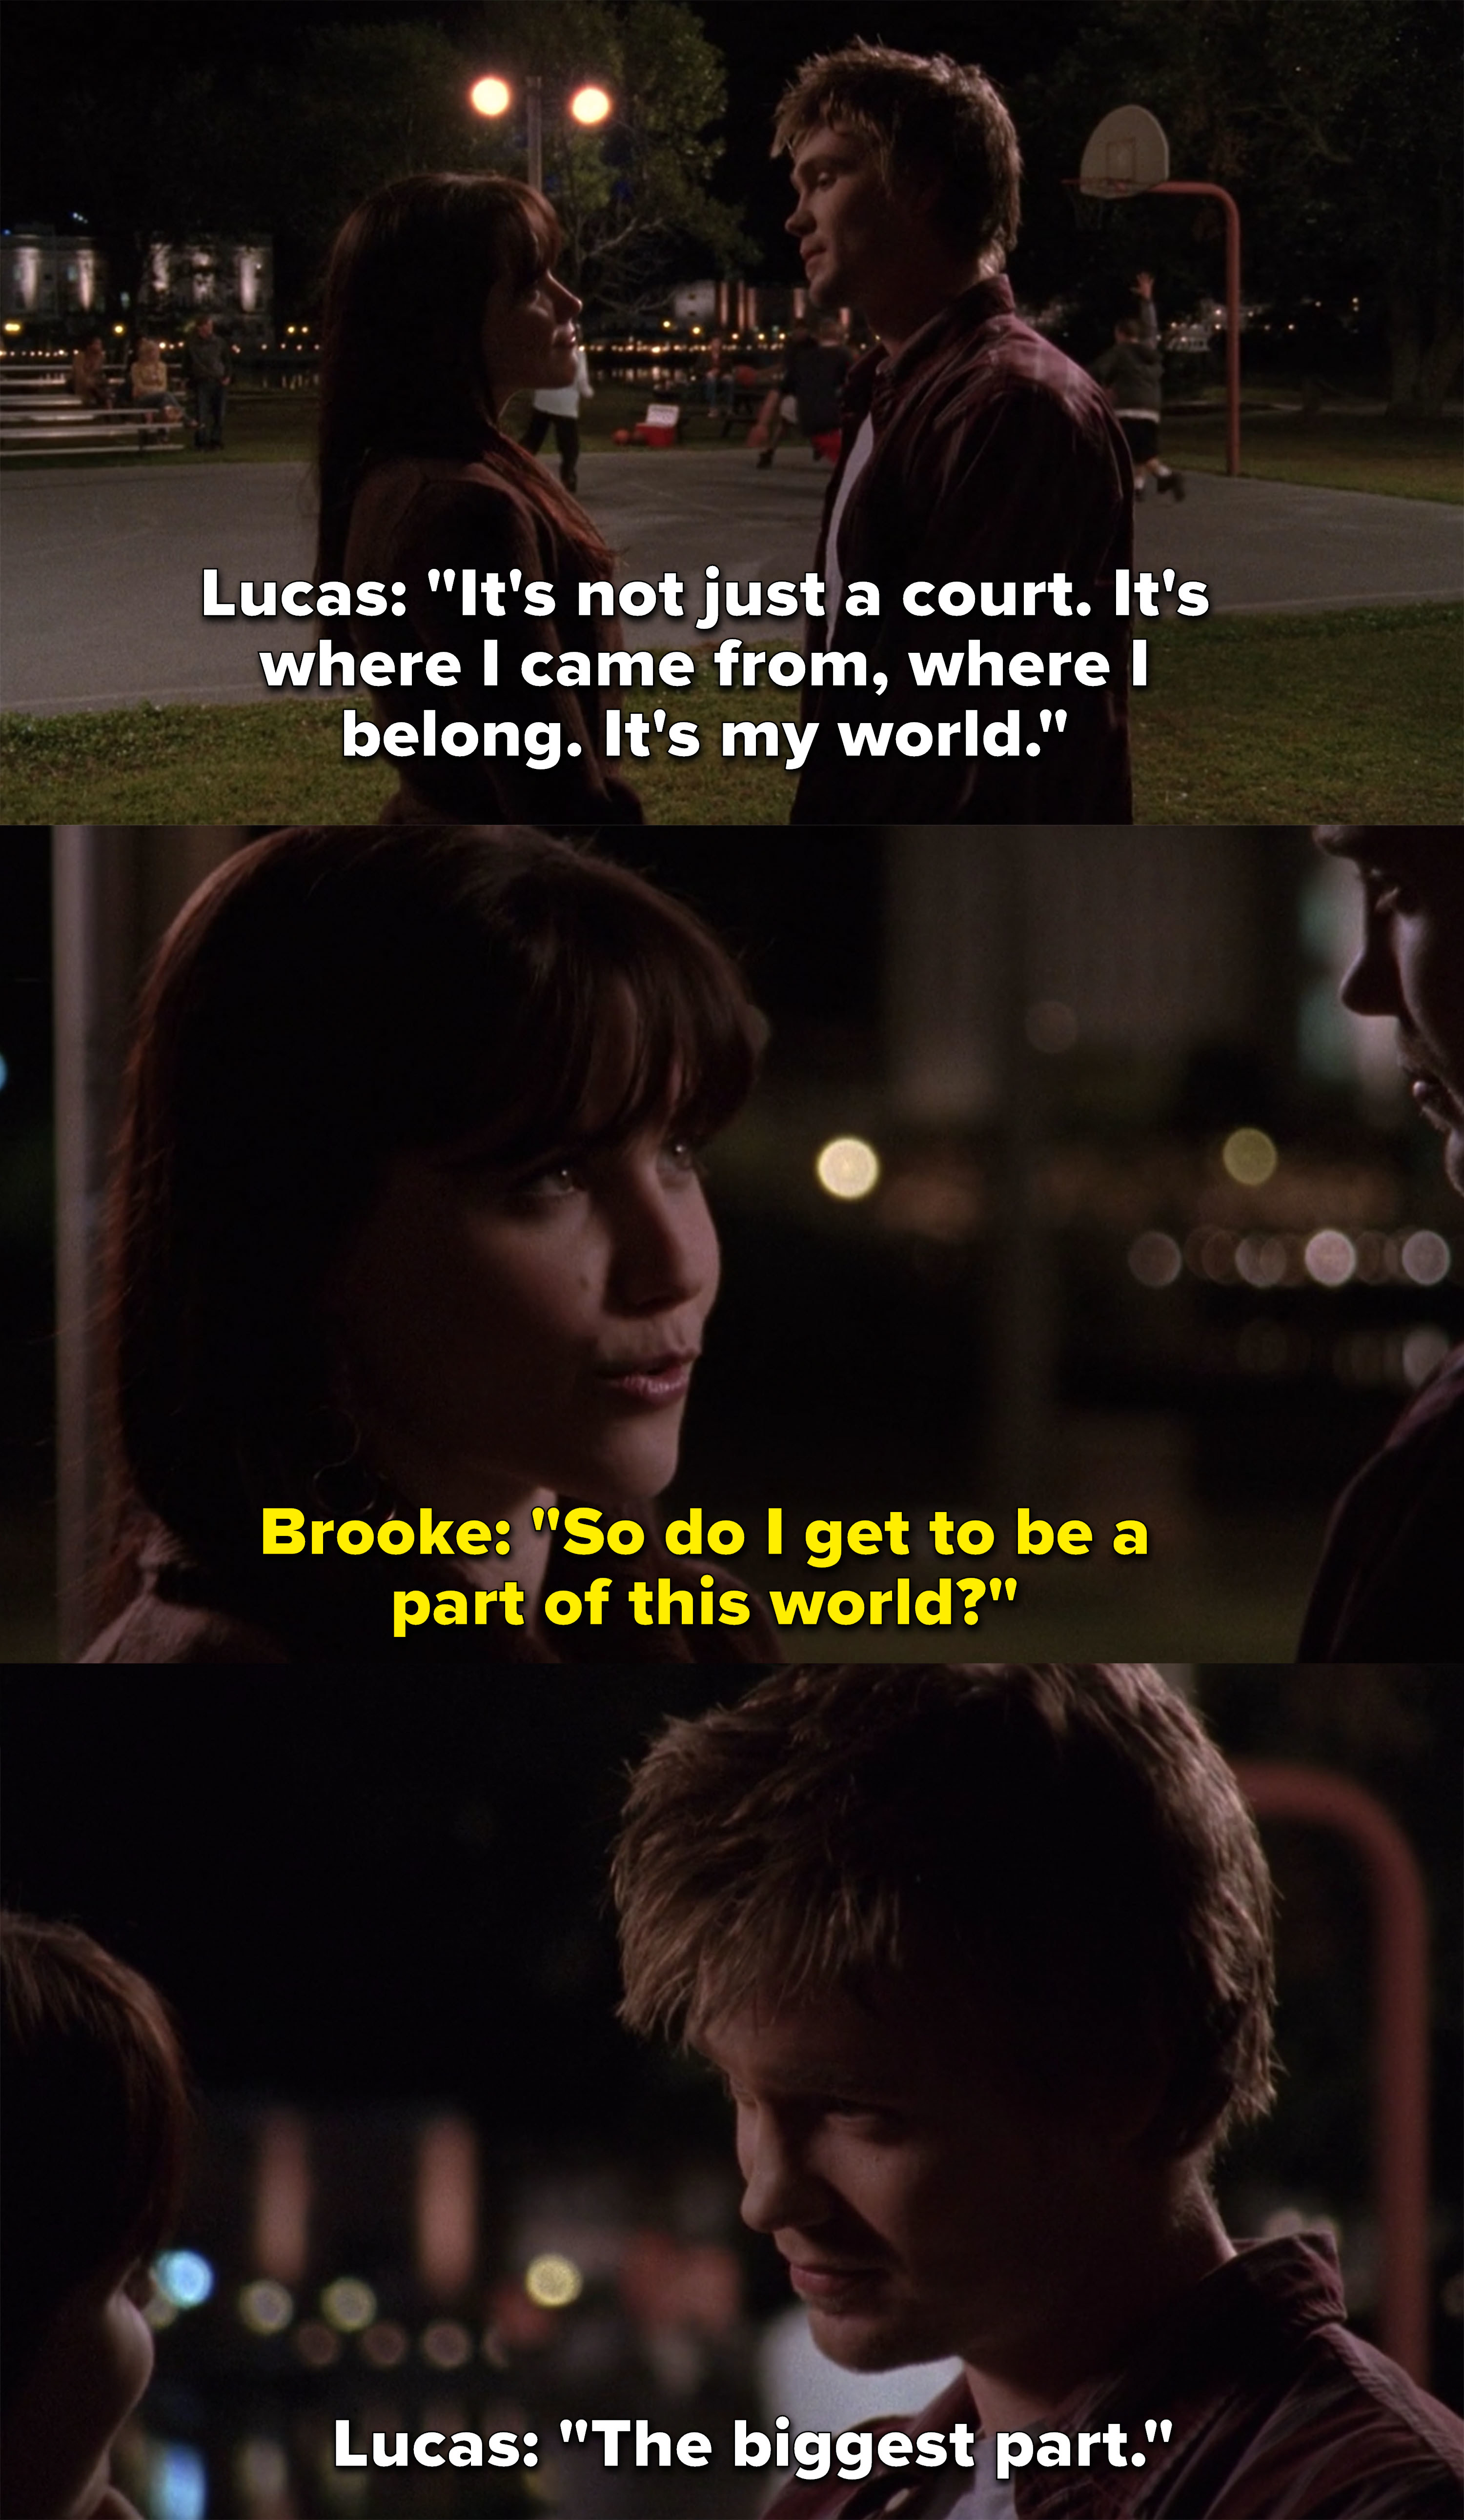 "Lucas says the court is his world, Brooke asks if she gets to be a part of this world, Lucas replies, ""The biggest part"""